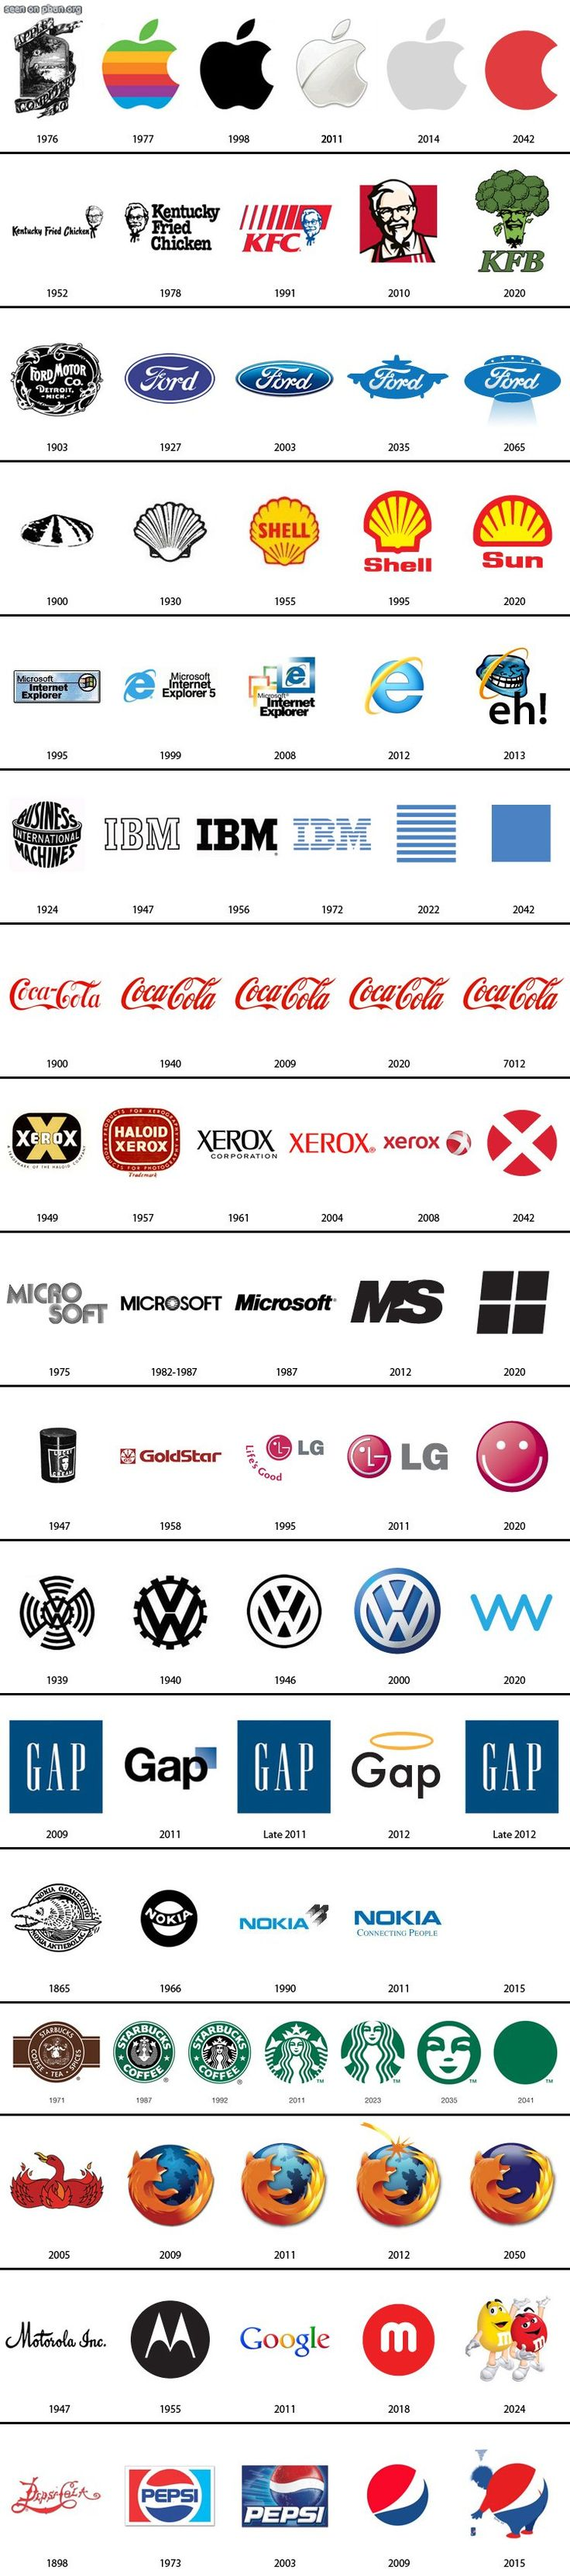 I really like this pin about the evolution development of these famous logos. I find it interesting to see how they have changed over time, becoming more modern looking in some and becoming more abstract in others. I also like the choices of various colors, seeing how some complement each other or emphasize each other. Brand Logo Evolution - Color and Design tjn